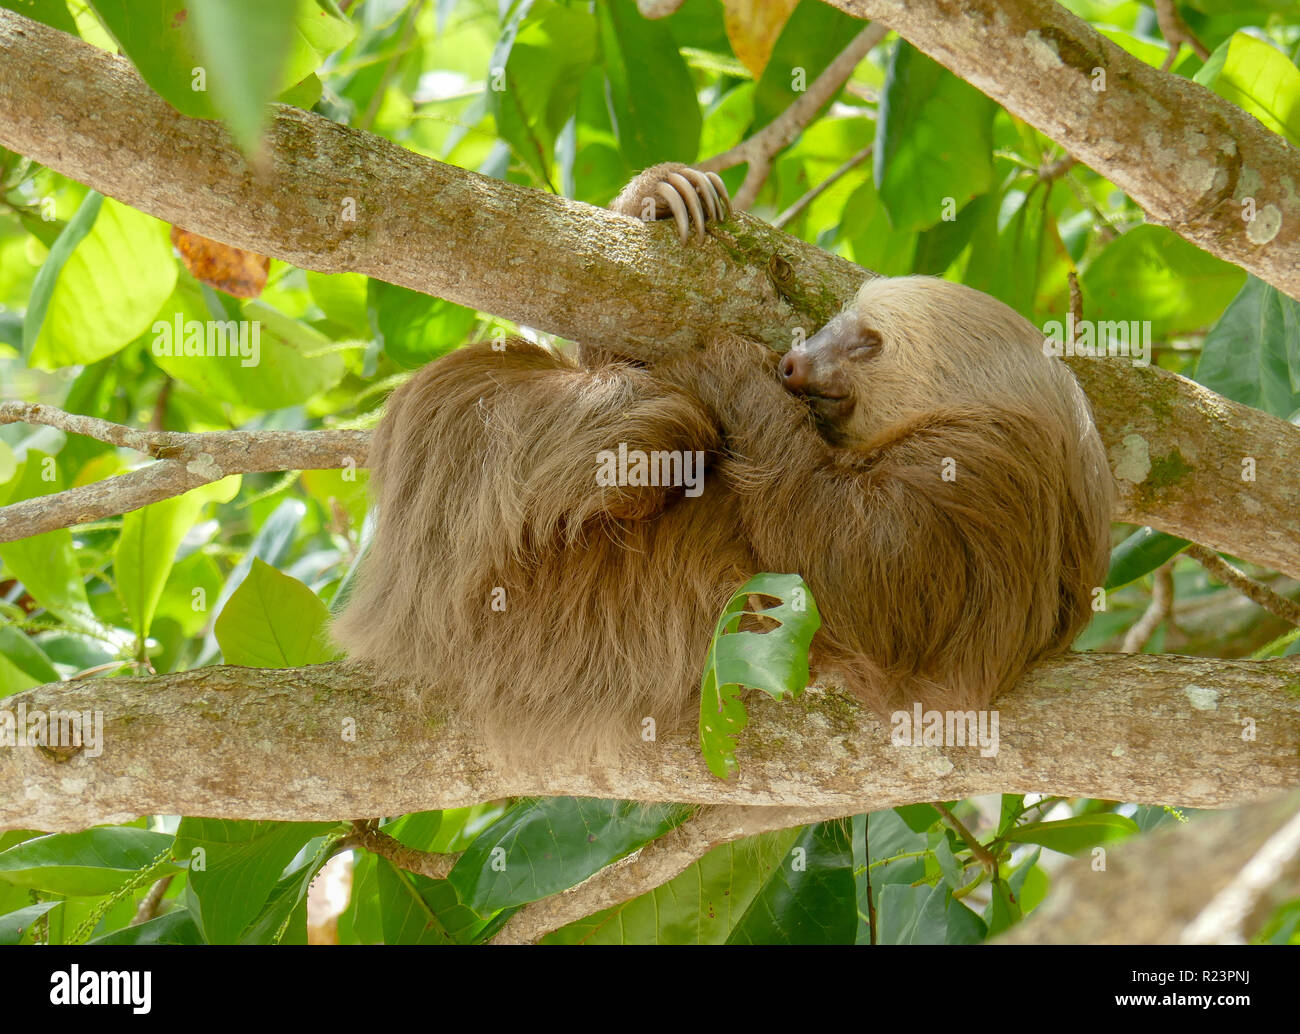 balled-up-sloth-hanging-in-mango-tree-sleeping-scratching-leg-R23PNJ.jpg